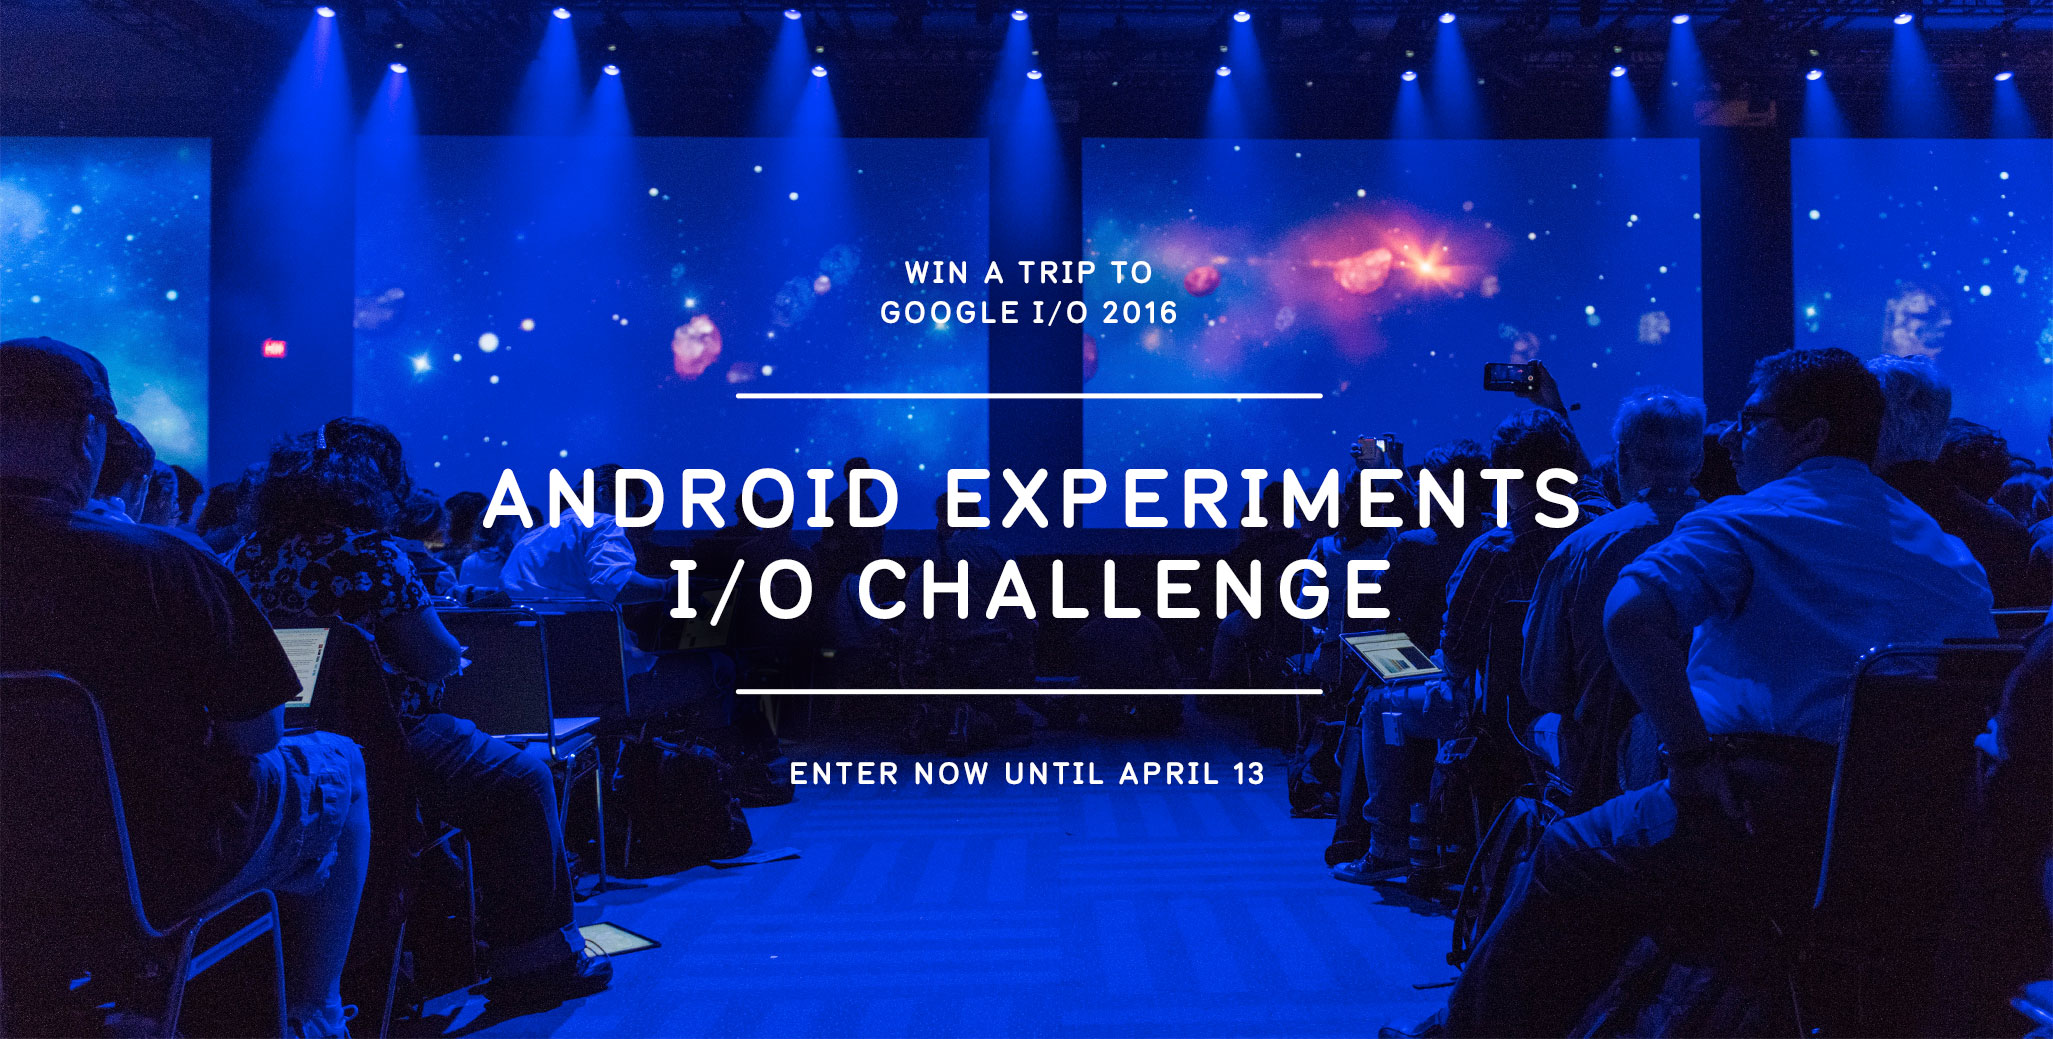 Android Experiments I/O Challenge